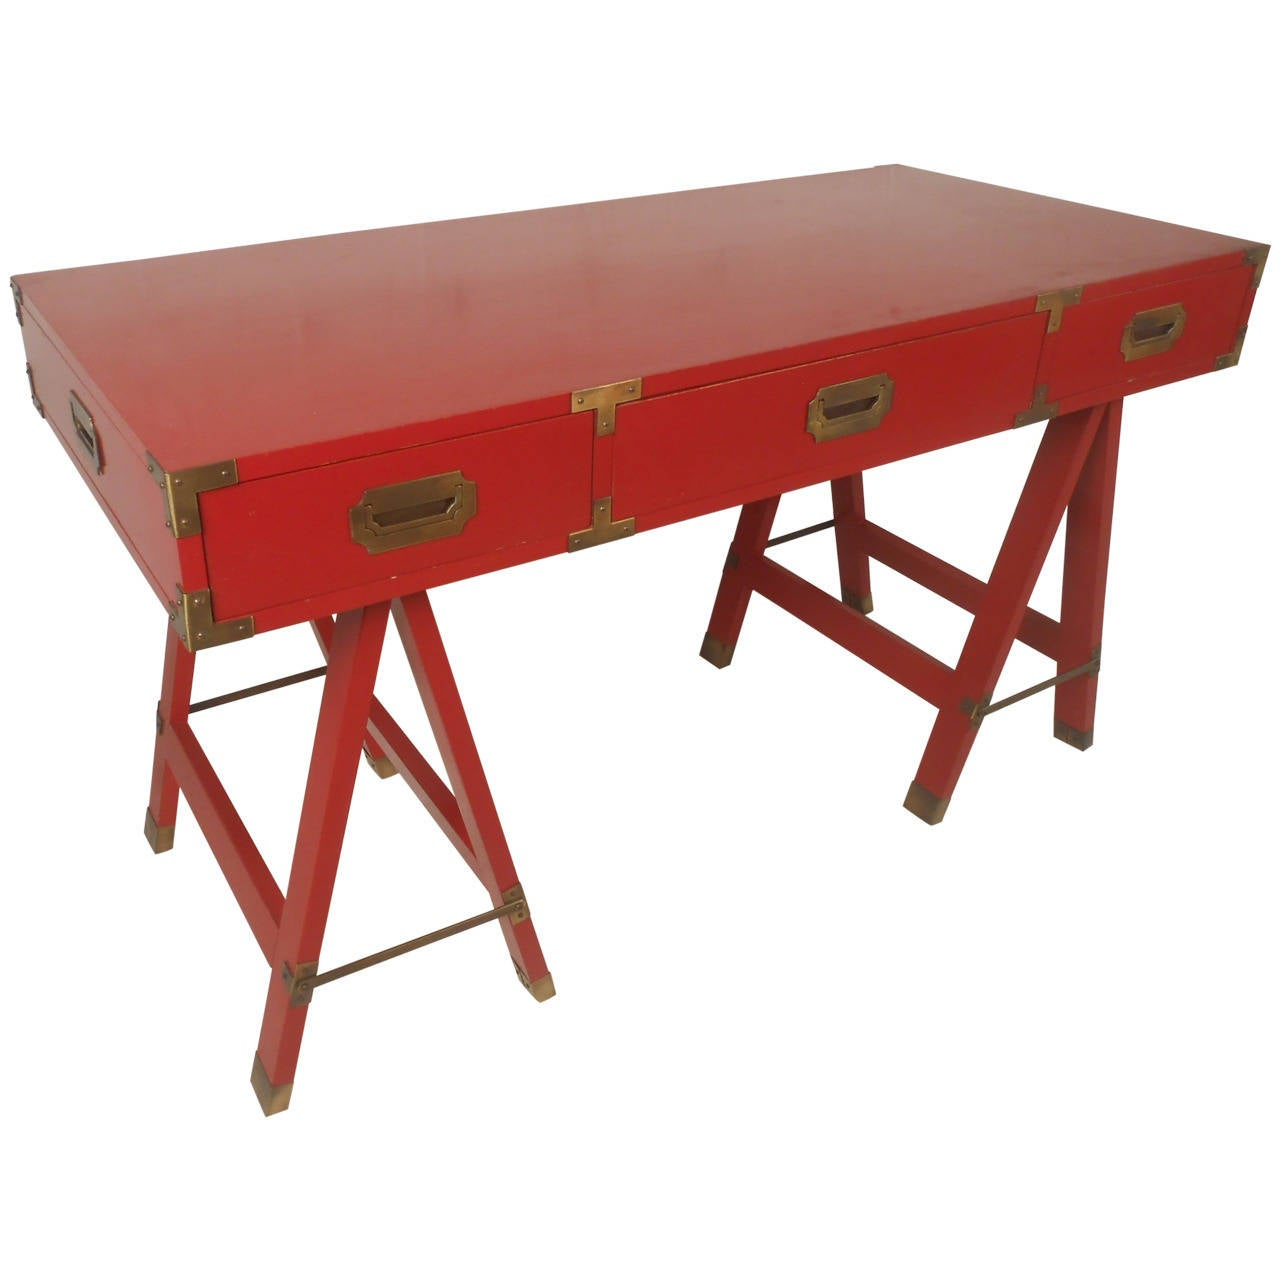 Red Campaign Desk with Brass Trim For Sale at 1stdibs